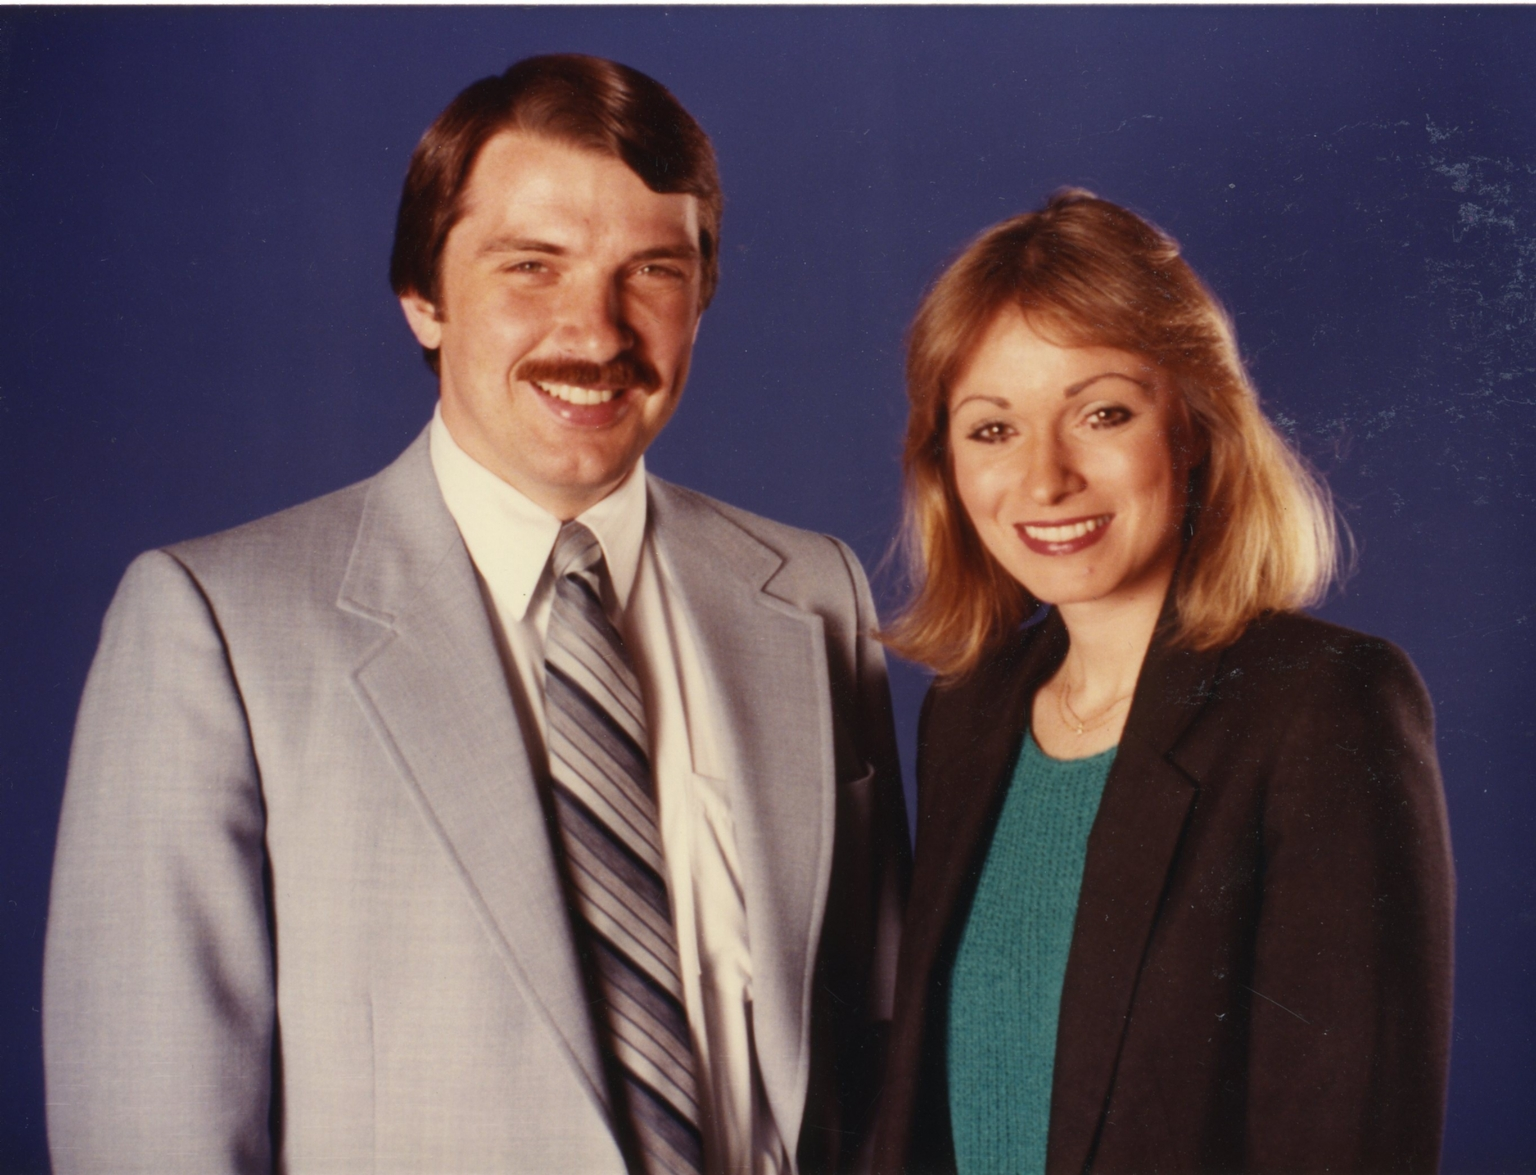 News anchors Ron Beaton and Vicki Dortch